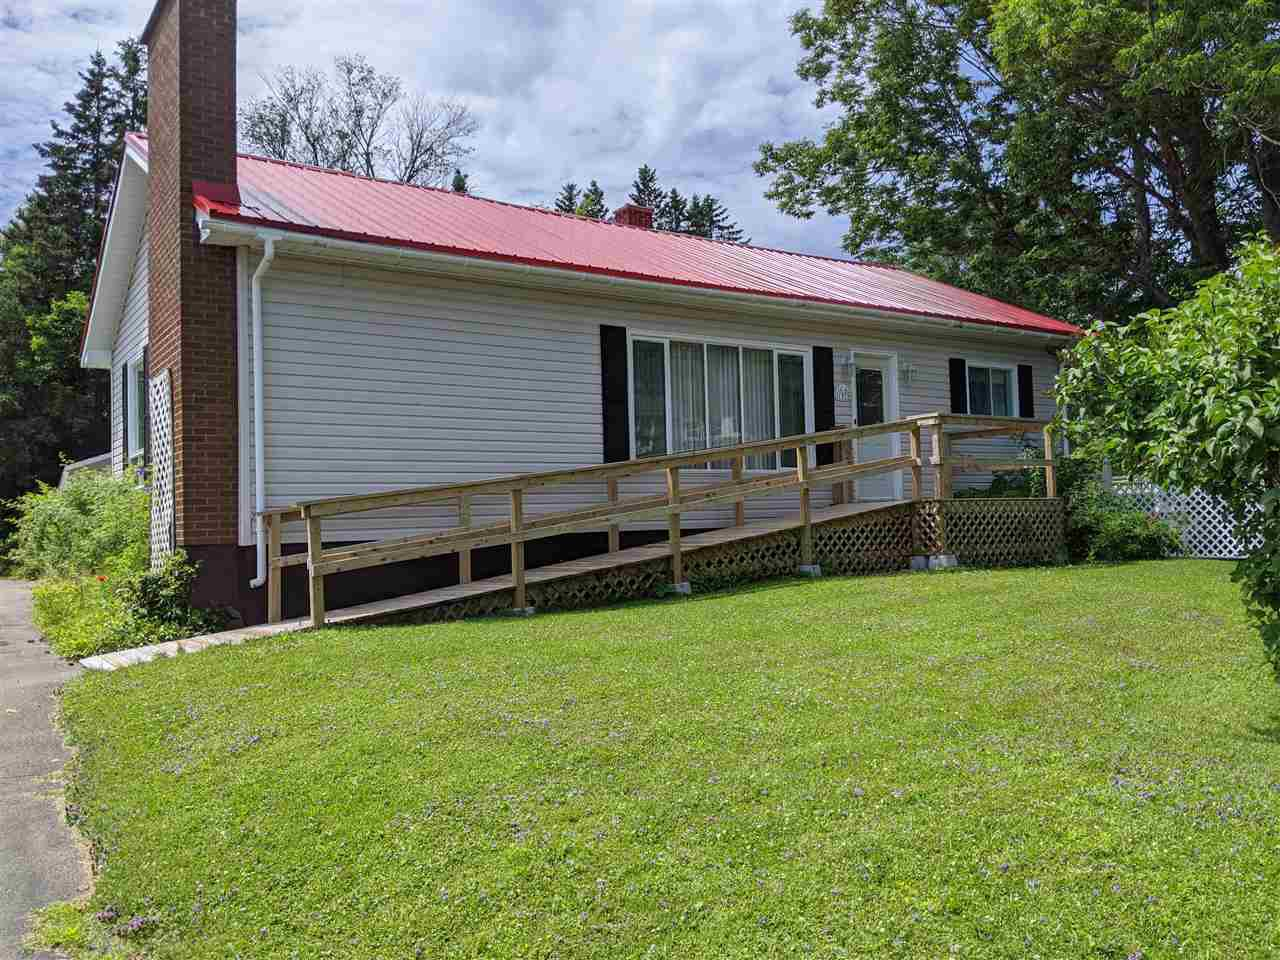 Main Photo: 1979 Acadia Avenue in Westville: 107-Trenton,Westville,Pictou Residential for sale (Northern Region)  : MLS®# 202013784